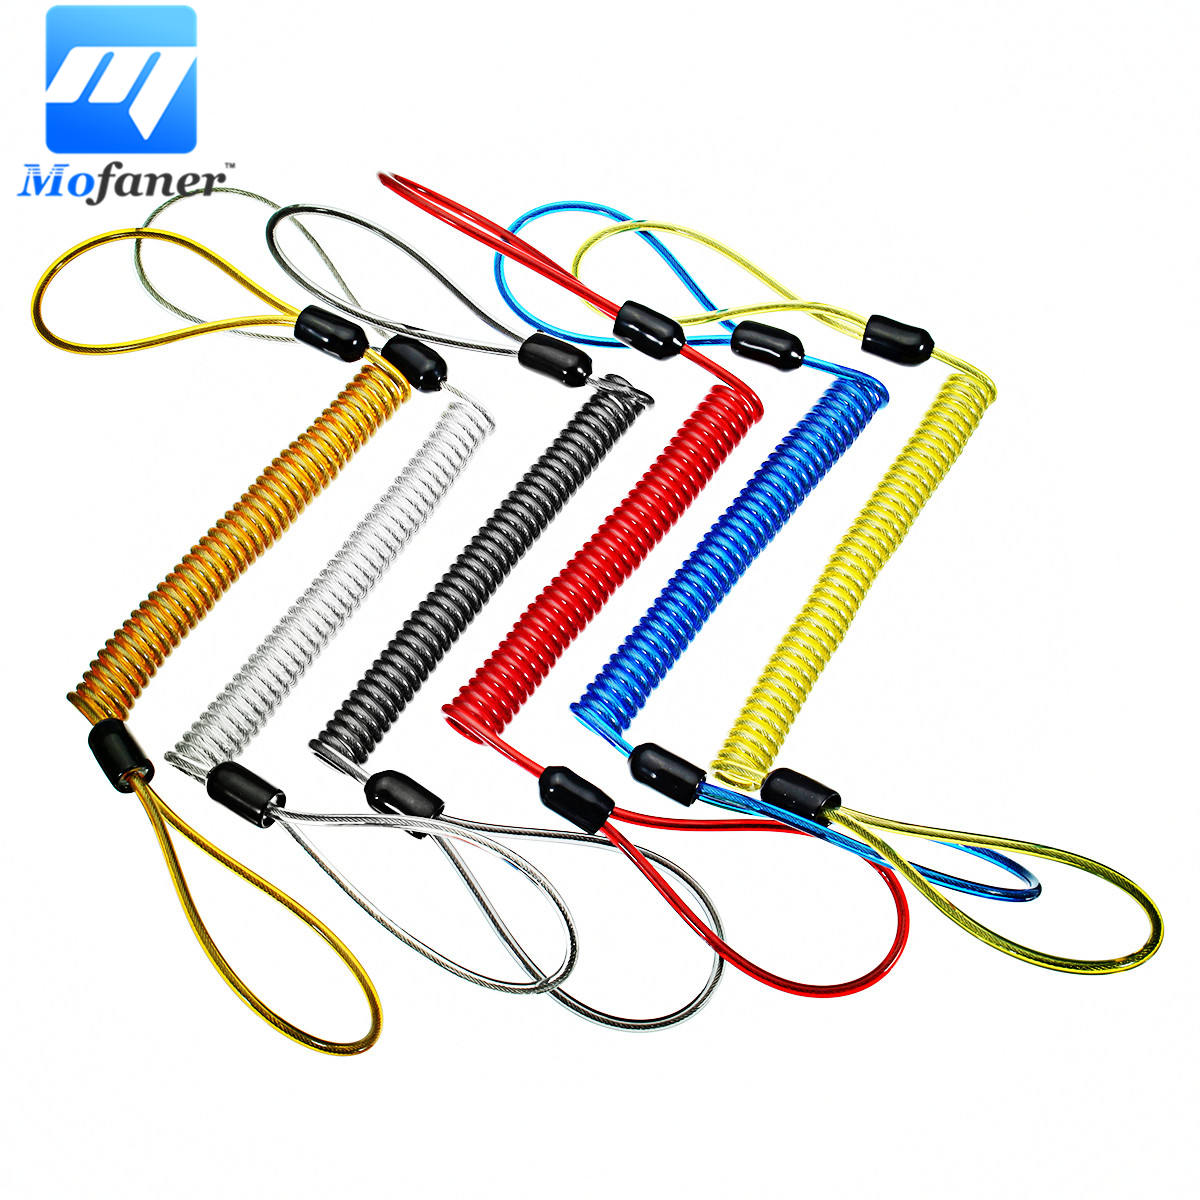 Motorcycle Alarm Disc Lock 1.2m 1.5m cable Motorcycle Scooter Disc Lock Security Reminder Cable Bike Motorbike Safety Tools